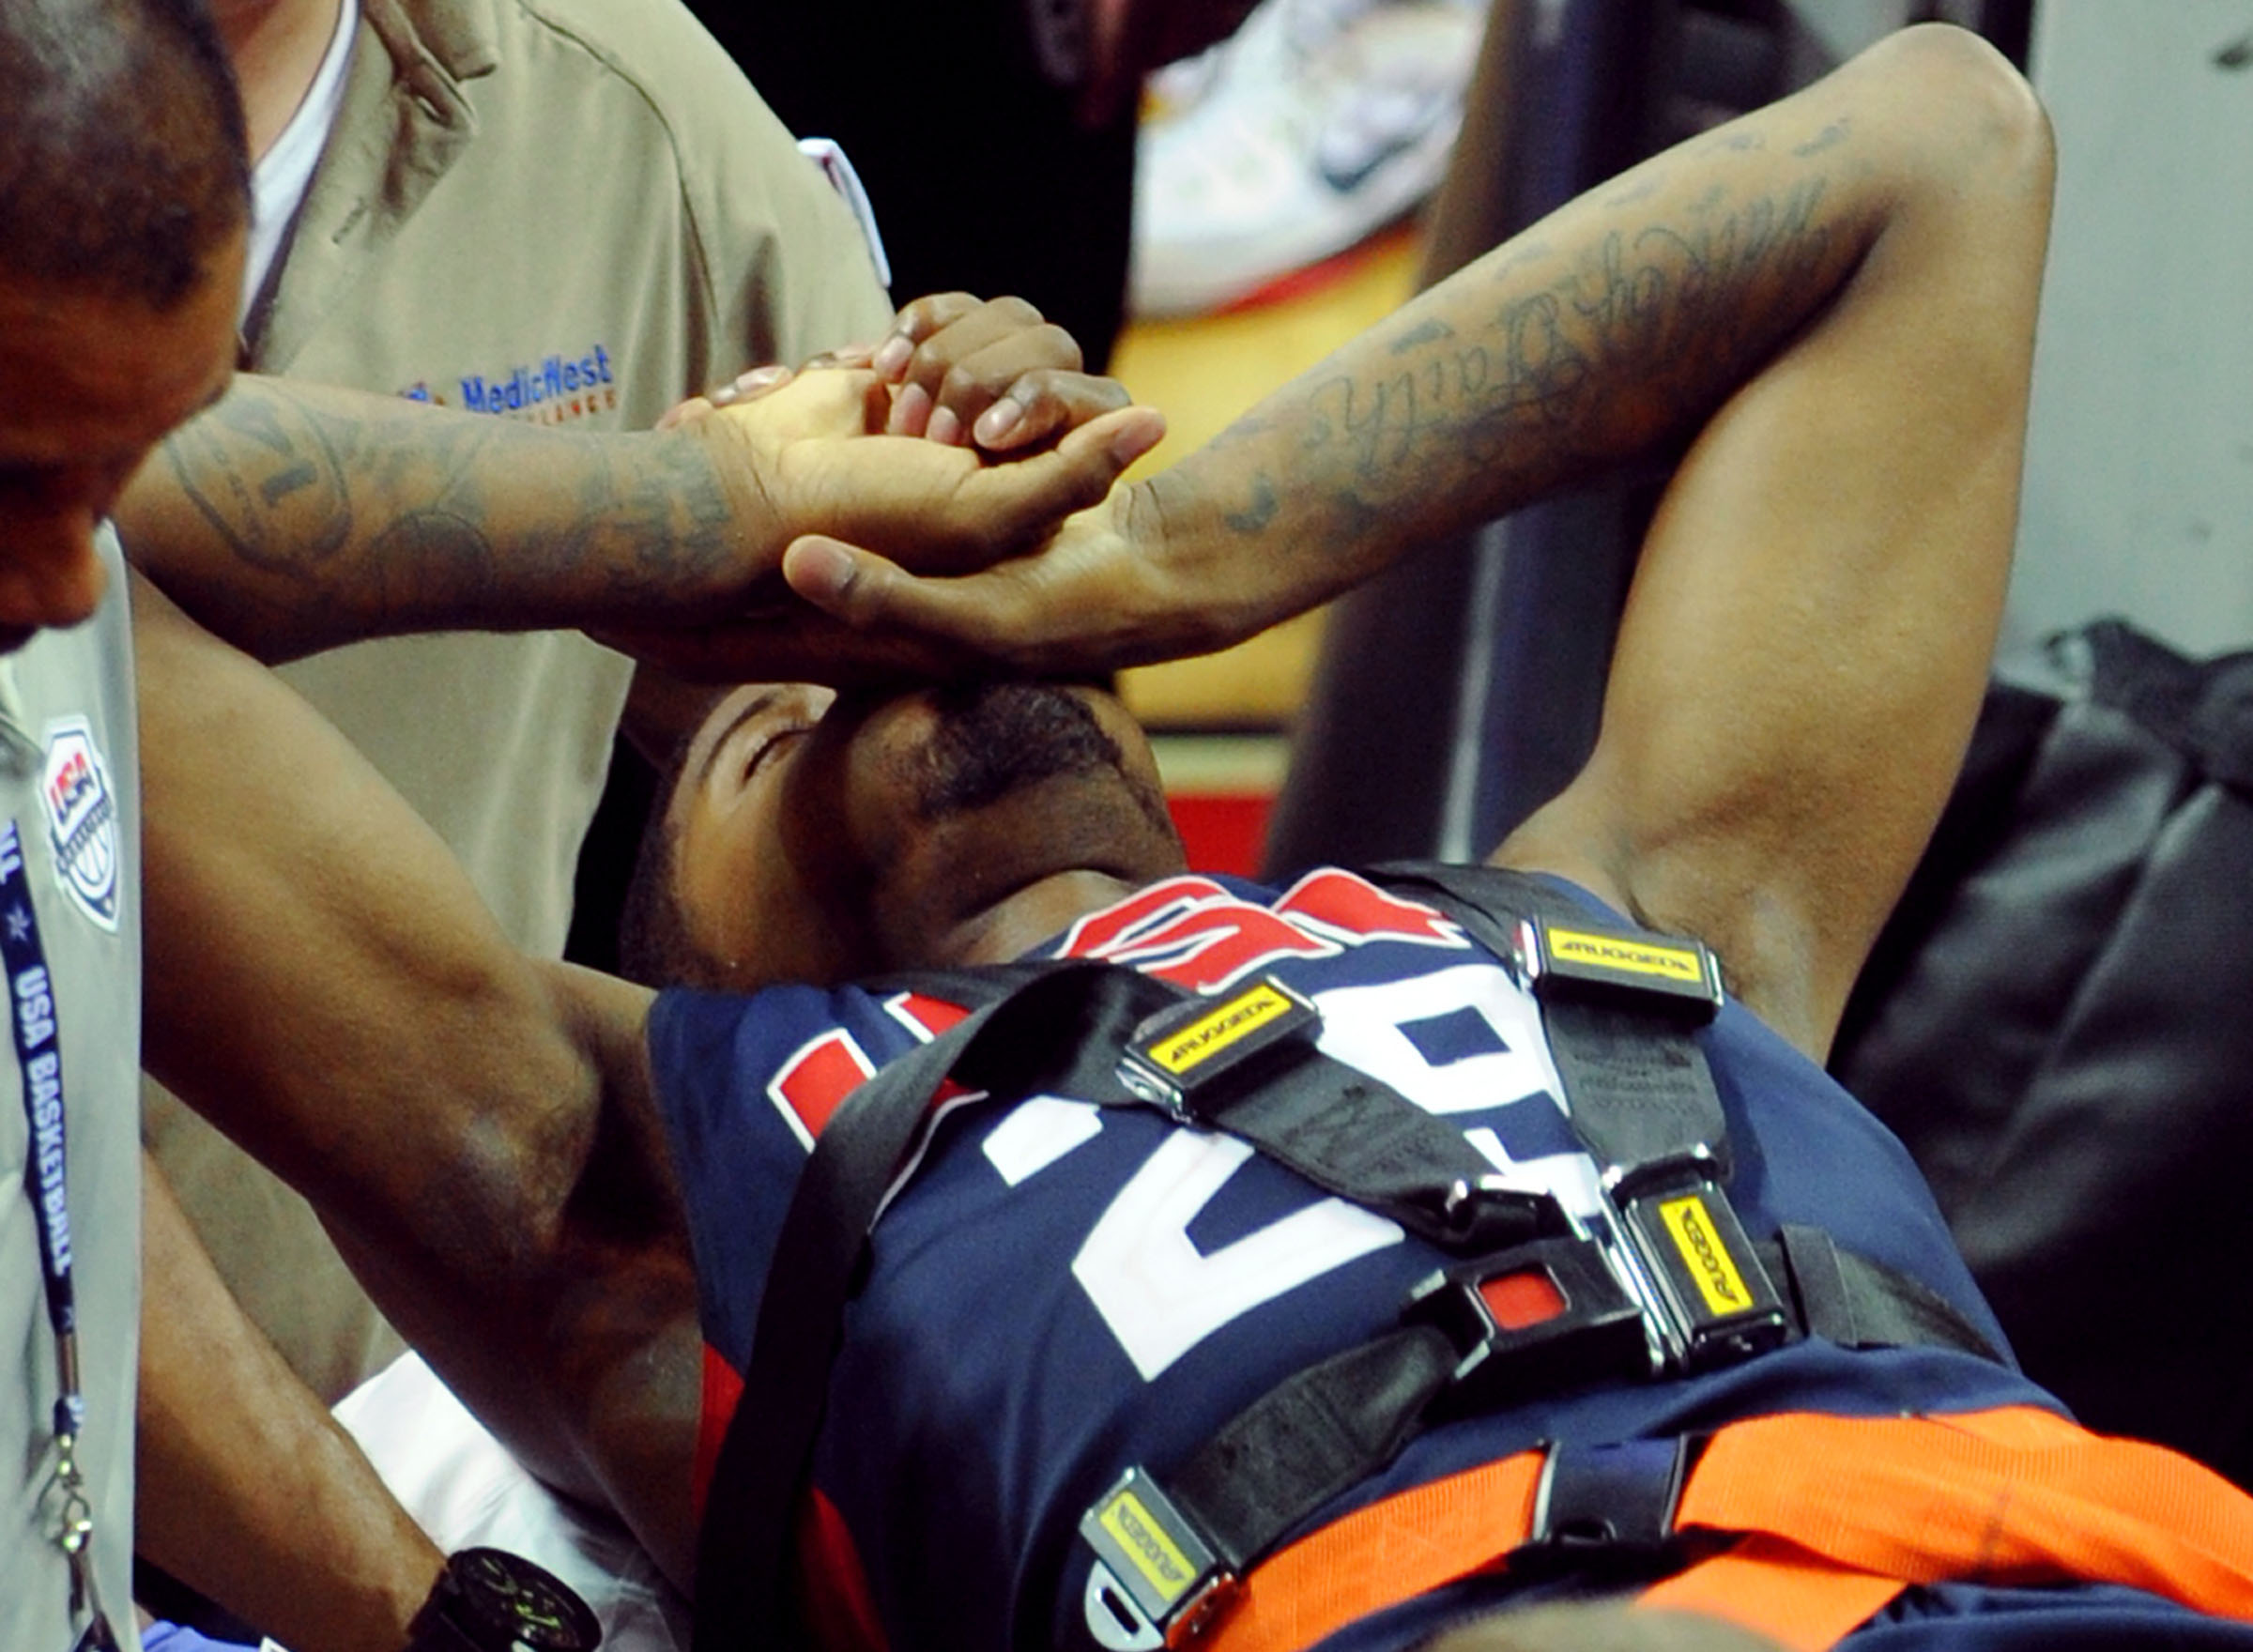 Video | Paul George suffers horrifying injury in scrimmage